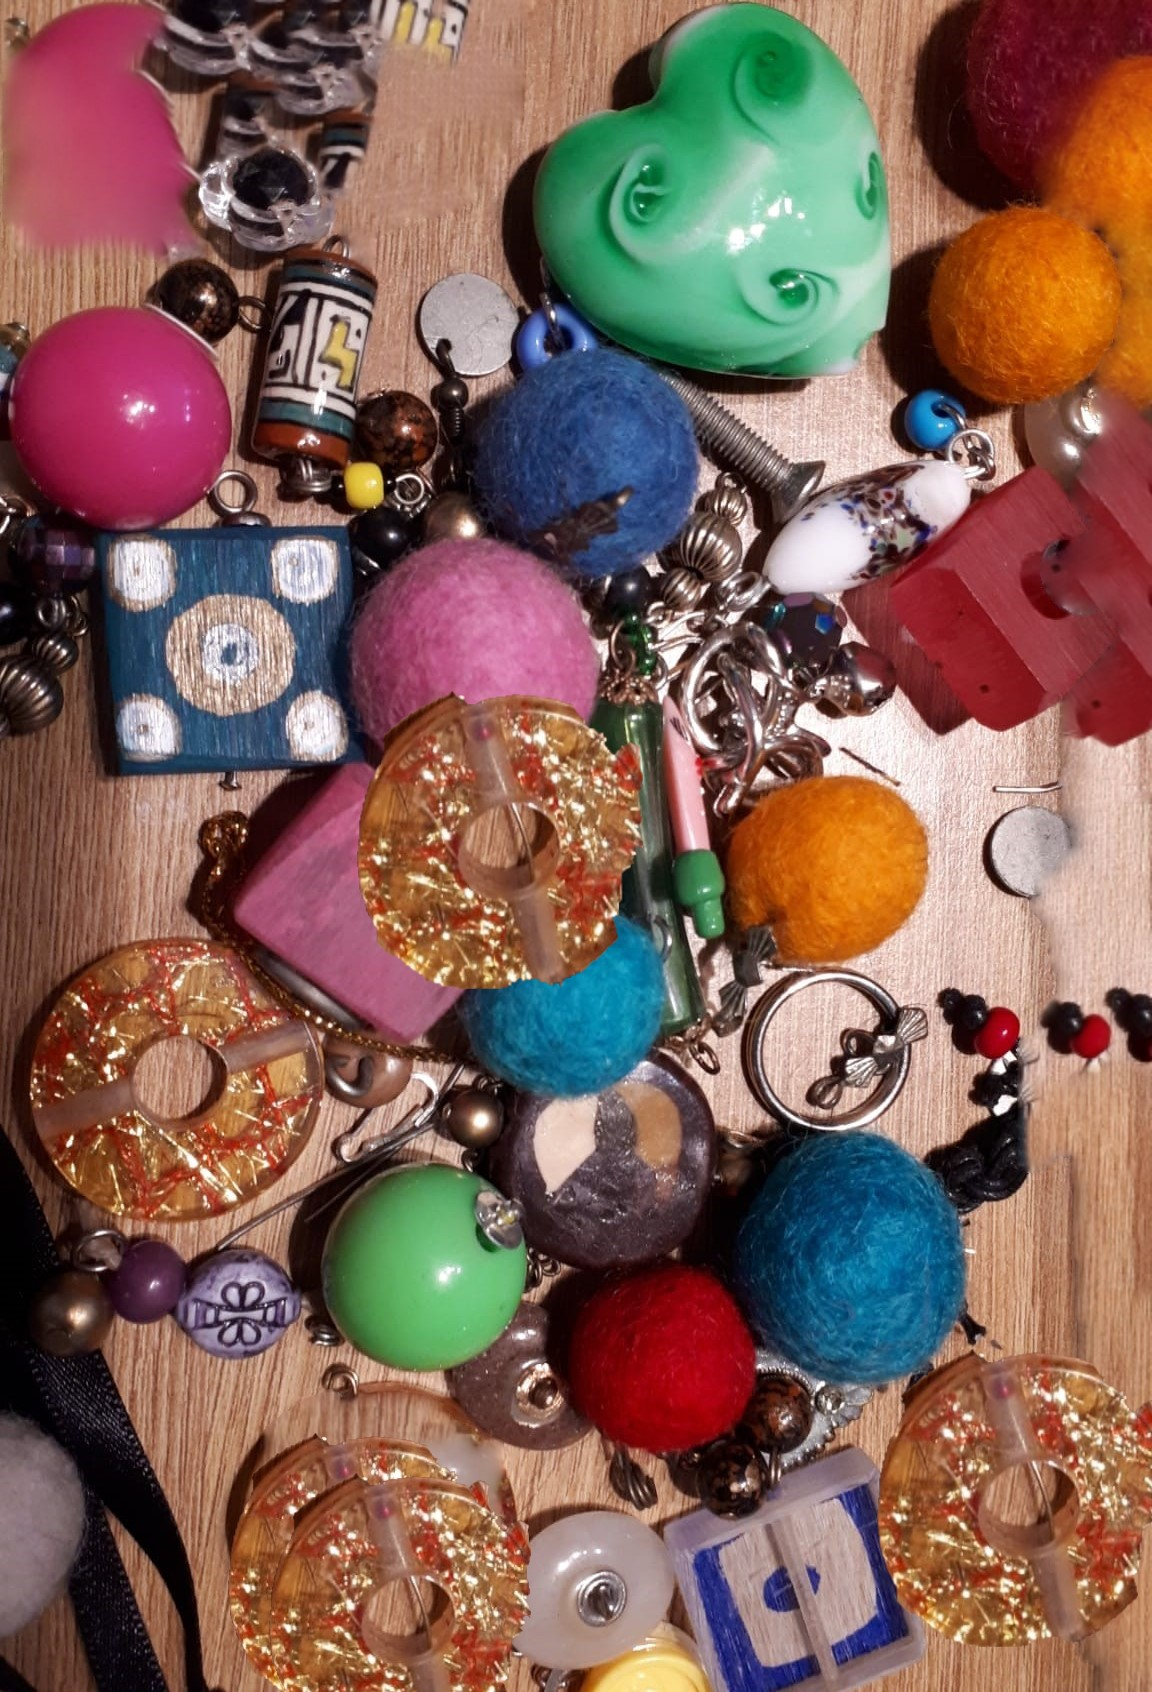 create-your-own-beaded-bracelet-an-introduction-to-simple-jewellery-making-using-cord-beads-and-found-objects